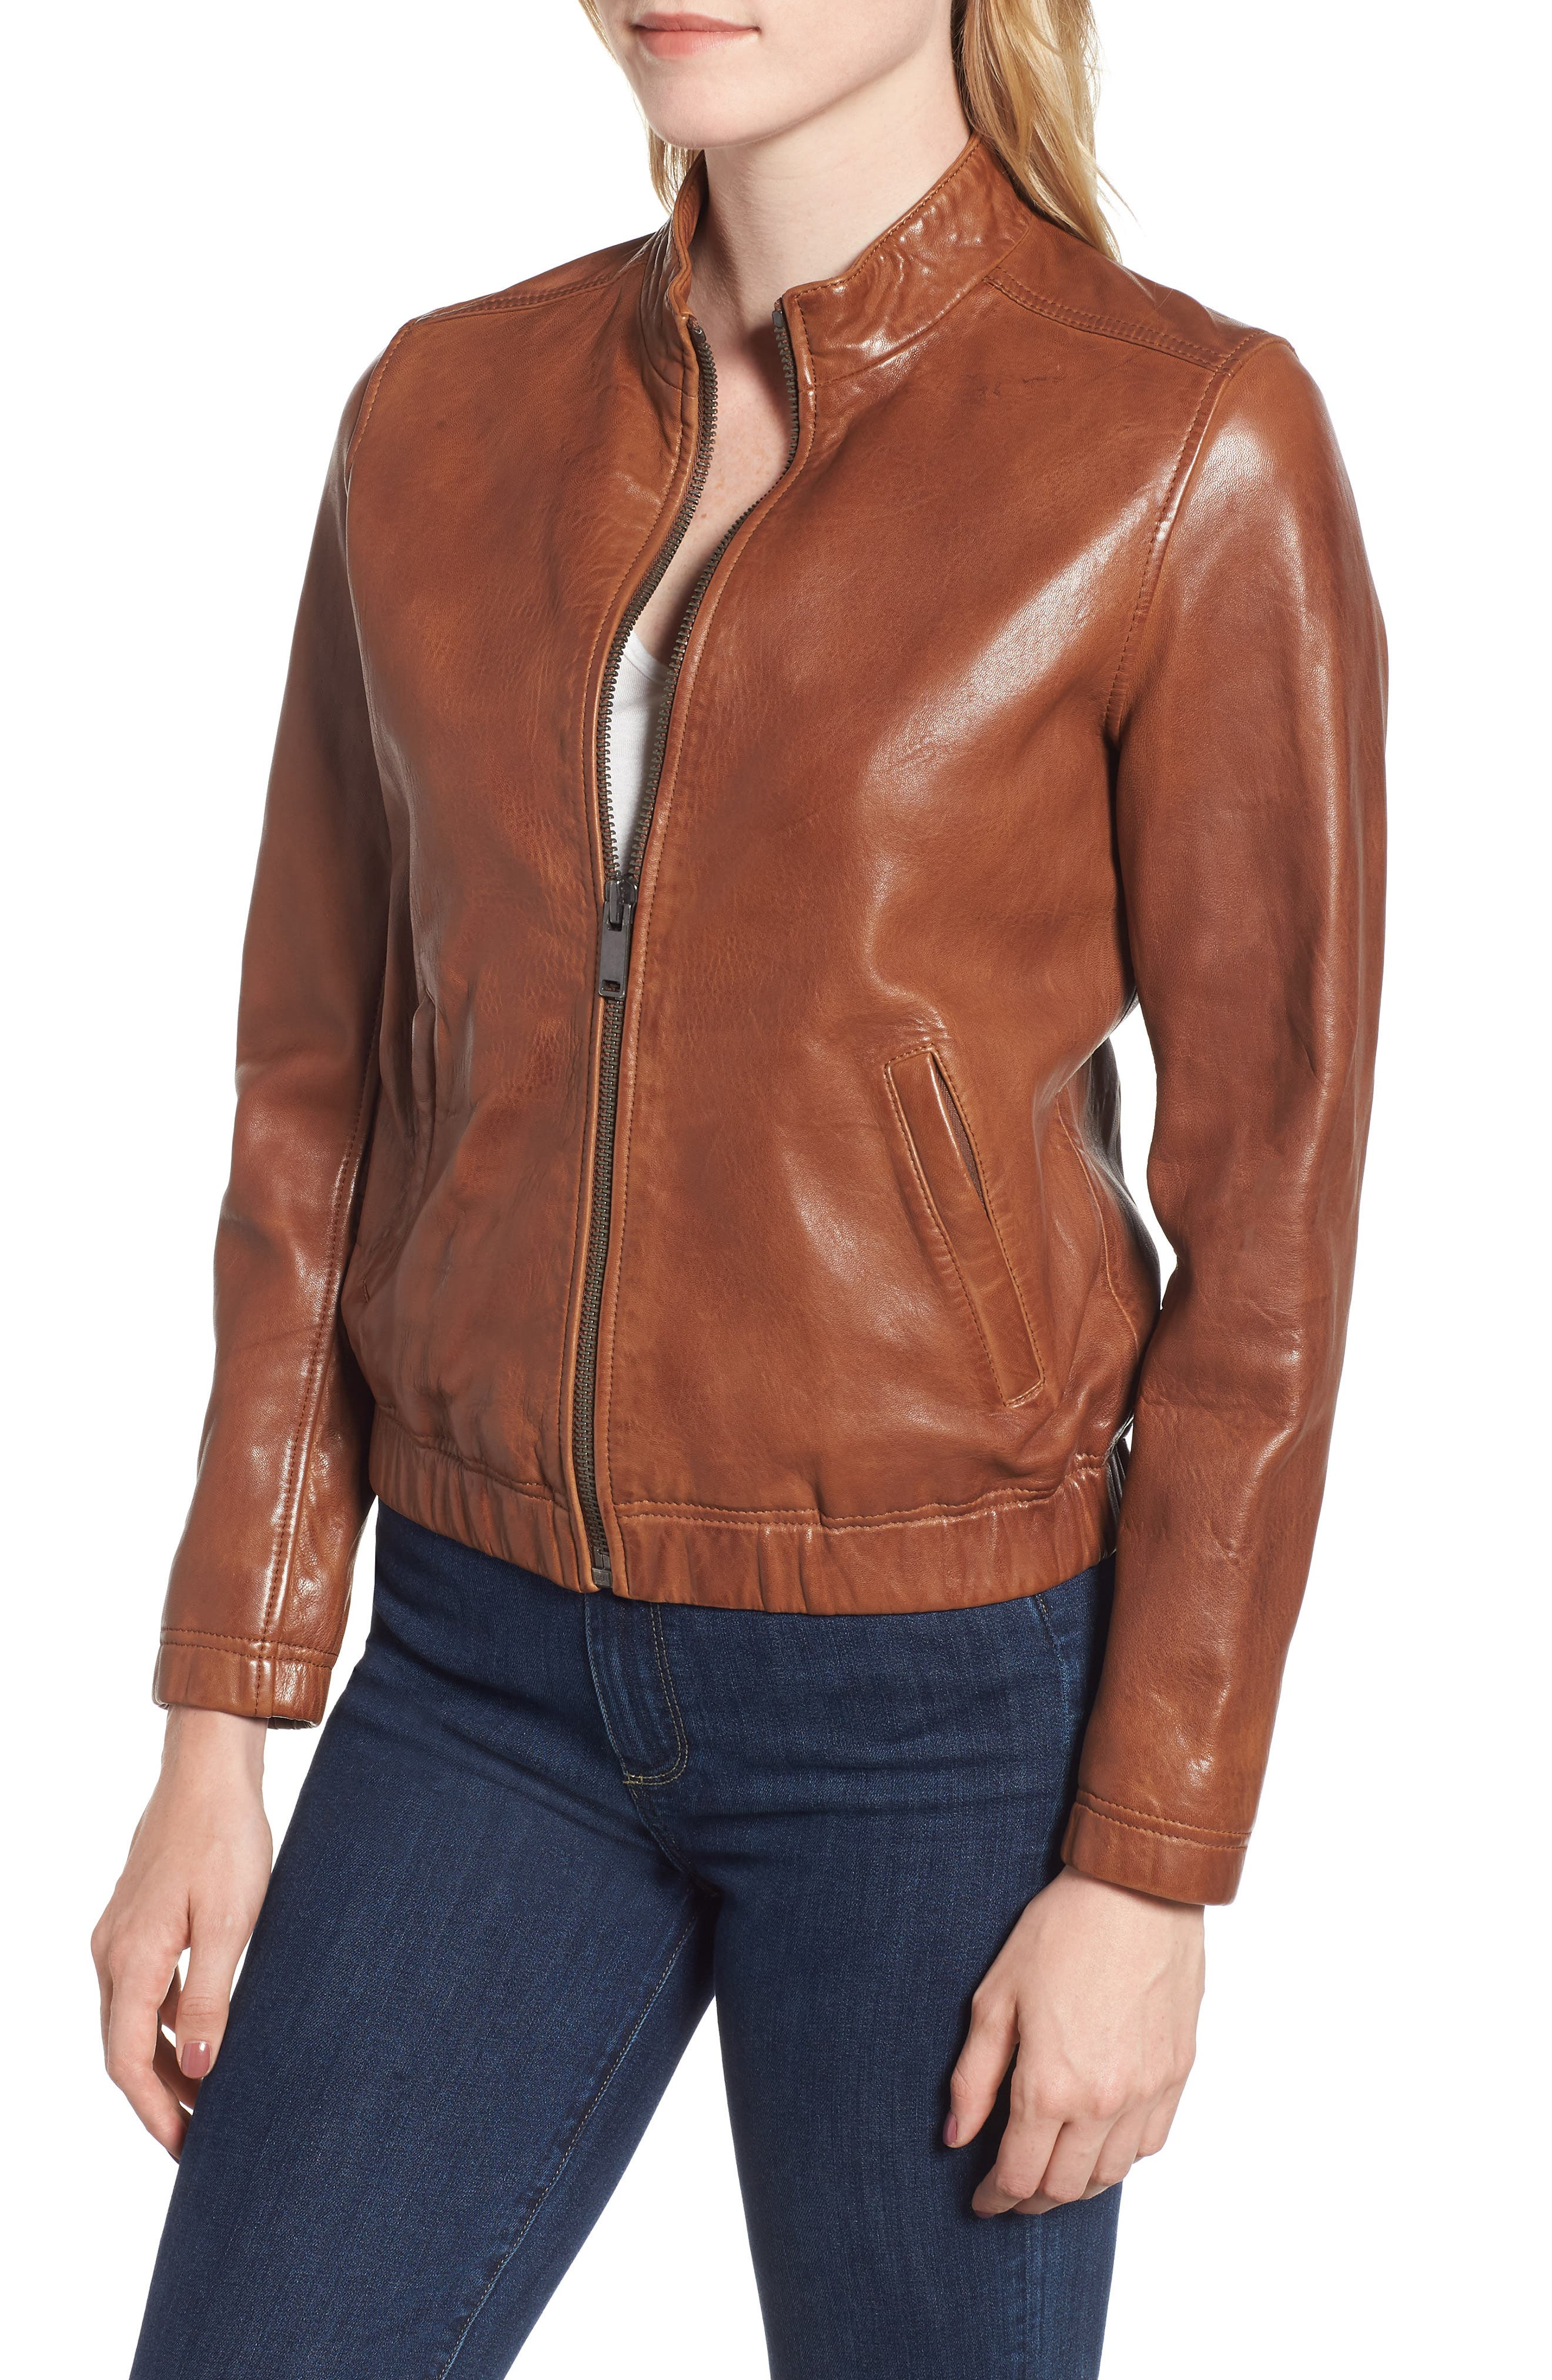 LUCKY BRAND,                             Ana Leather Jacket,                             Alternate thumbnail 5, color,                             210